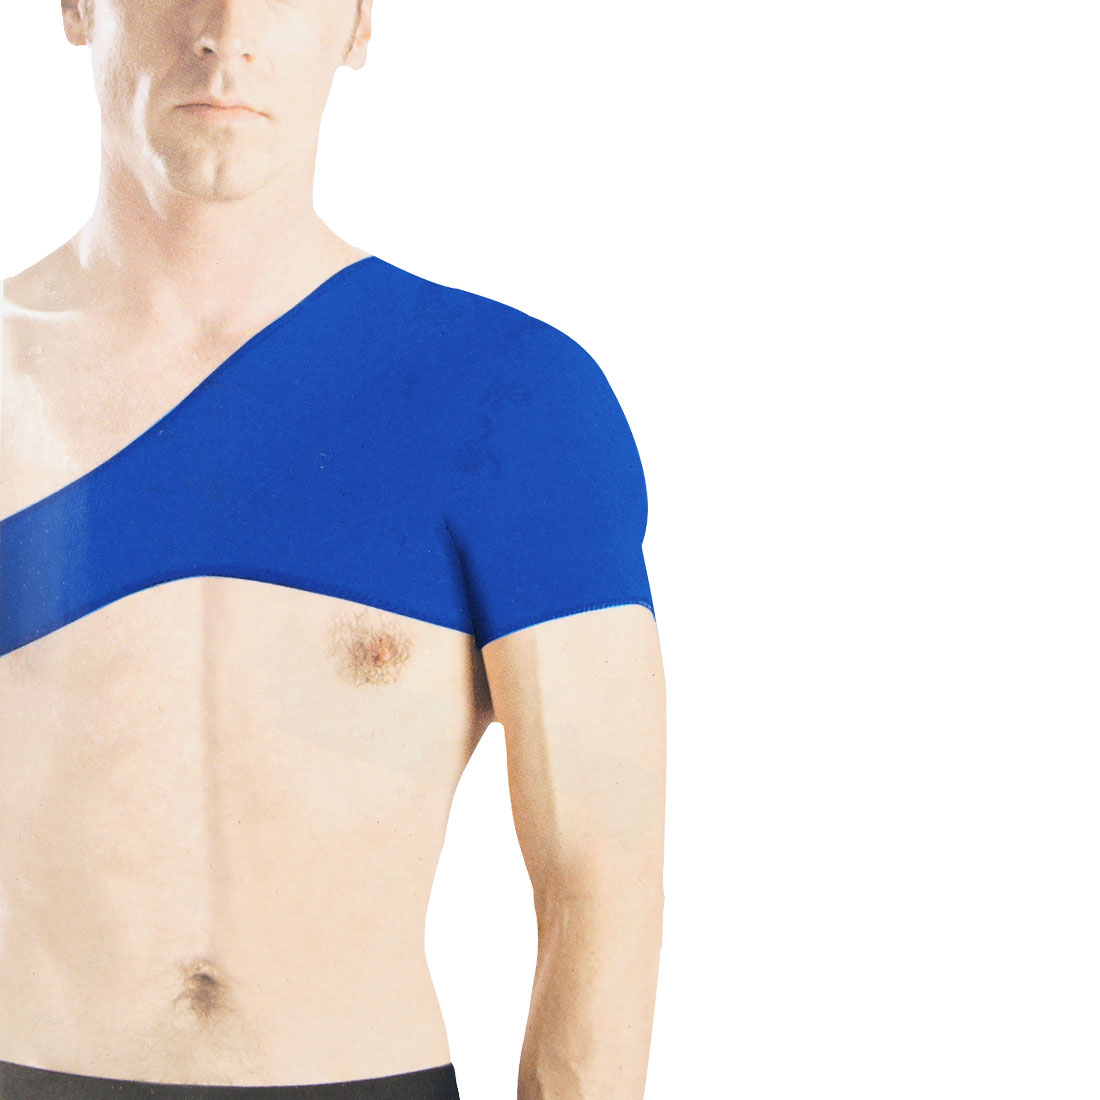 Men Sports Protecting Blue Elastic Neoprene Single Shoulder Brace Support